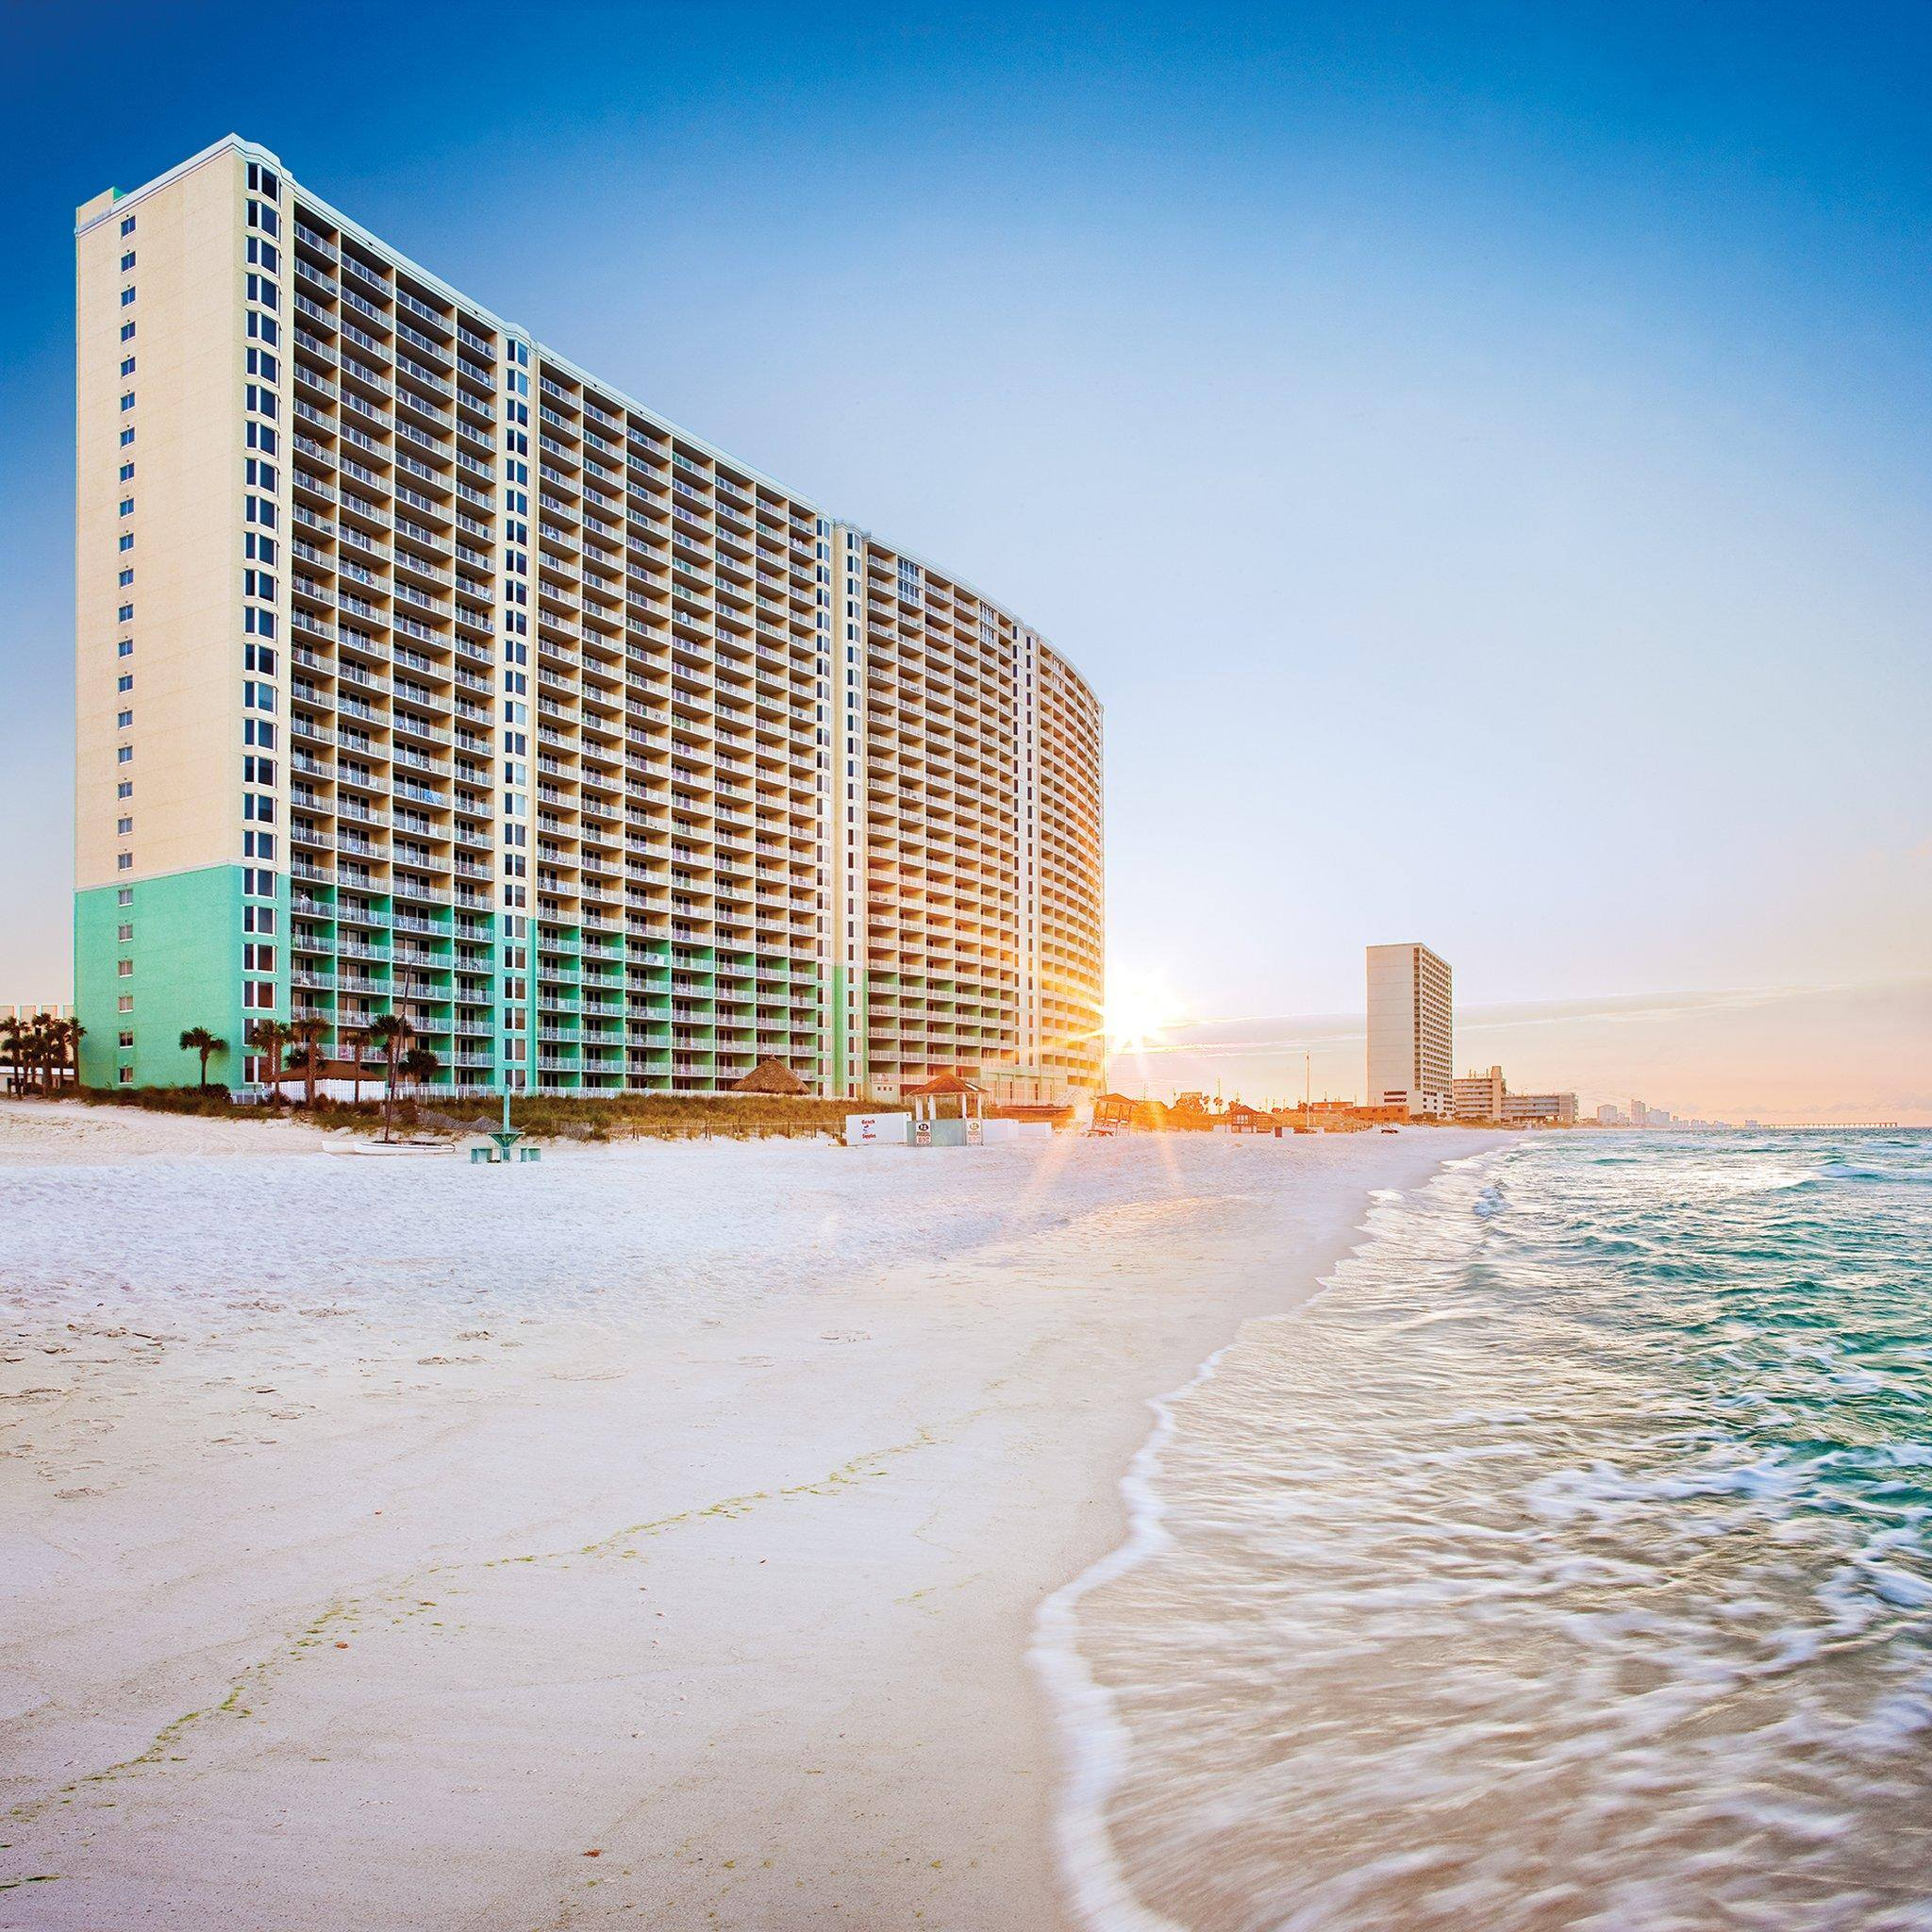 Traveler's Guide to the Top 10 Hotels in Panama City Beach, Florida